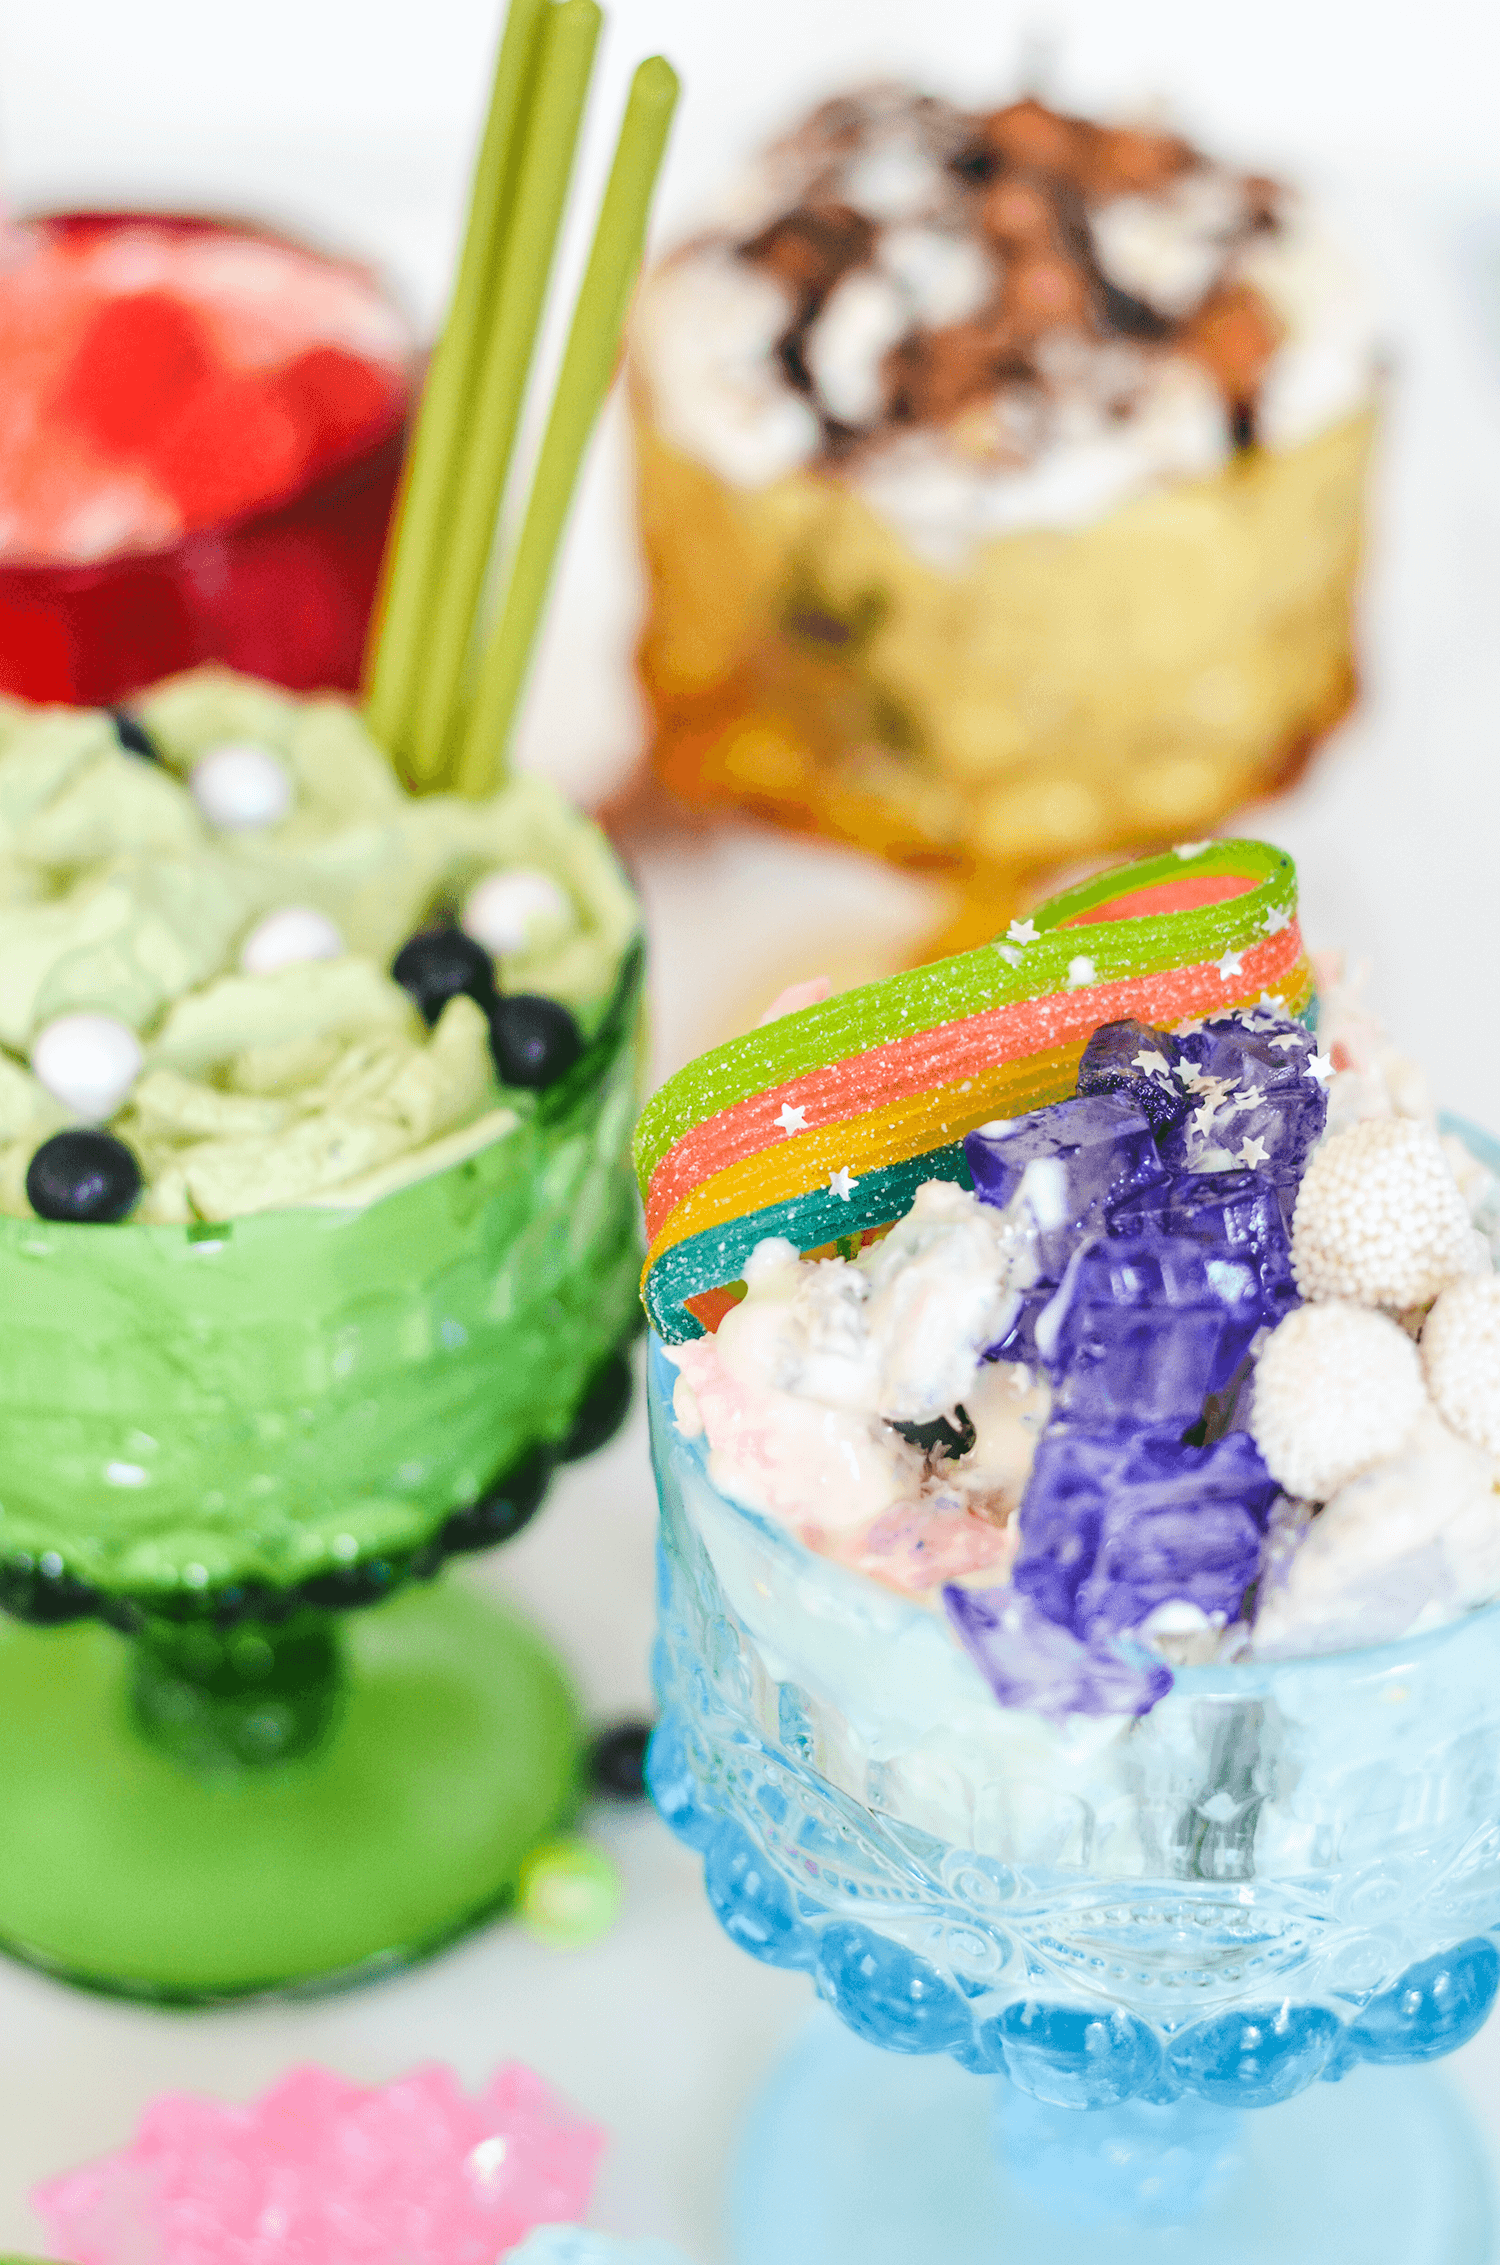 Thai Rolled Ice Cream Sundaes Recipe and Tutorial